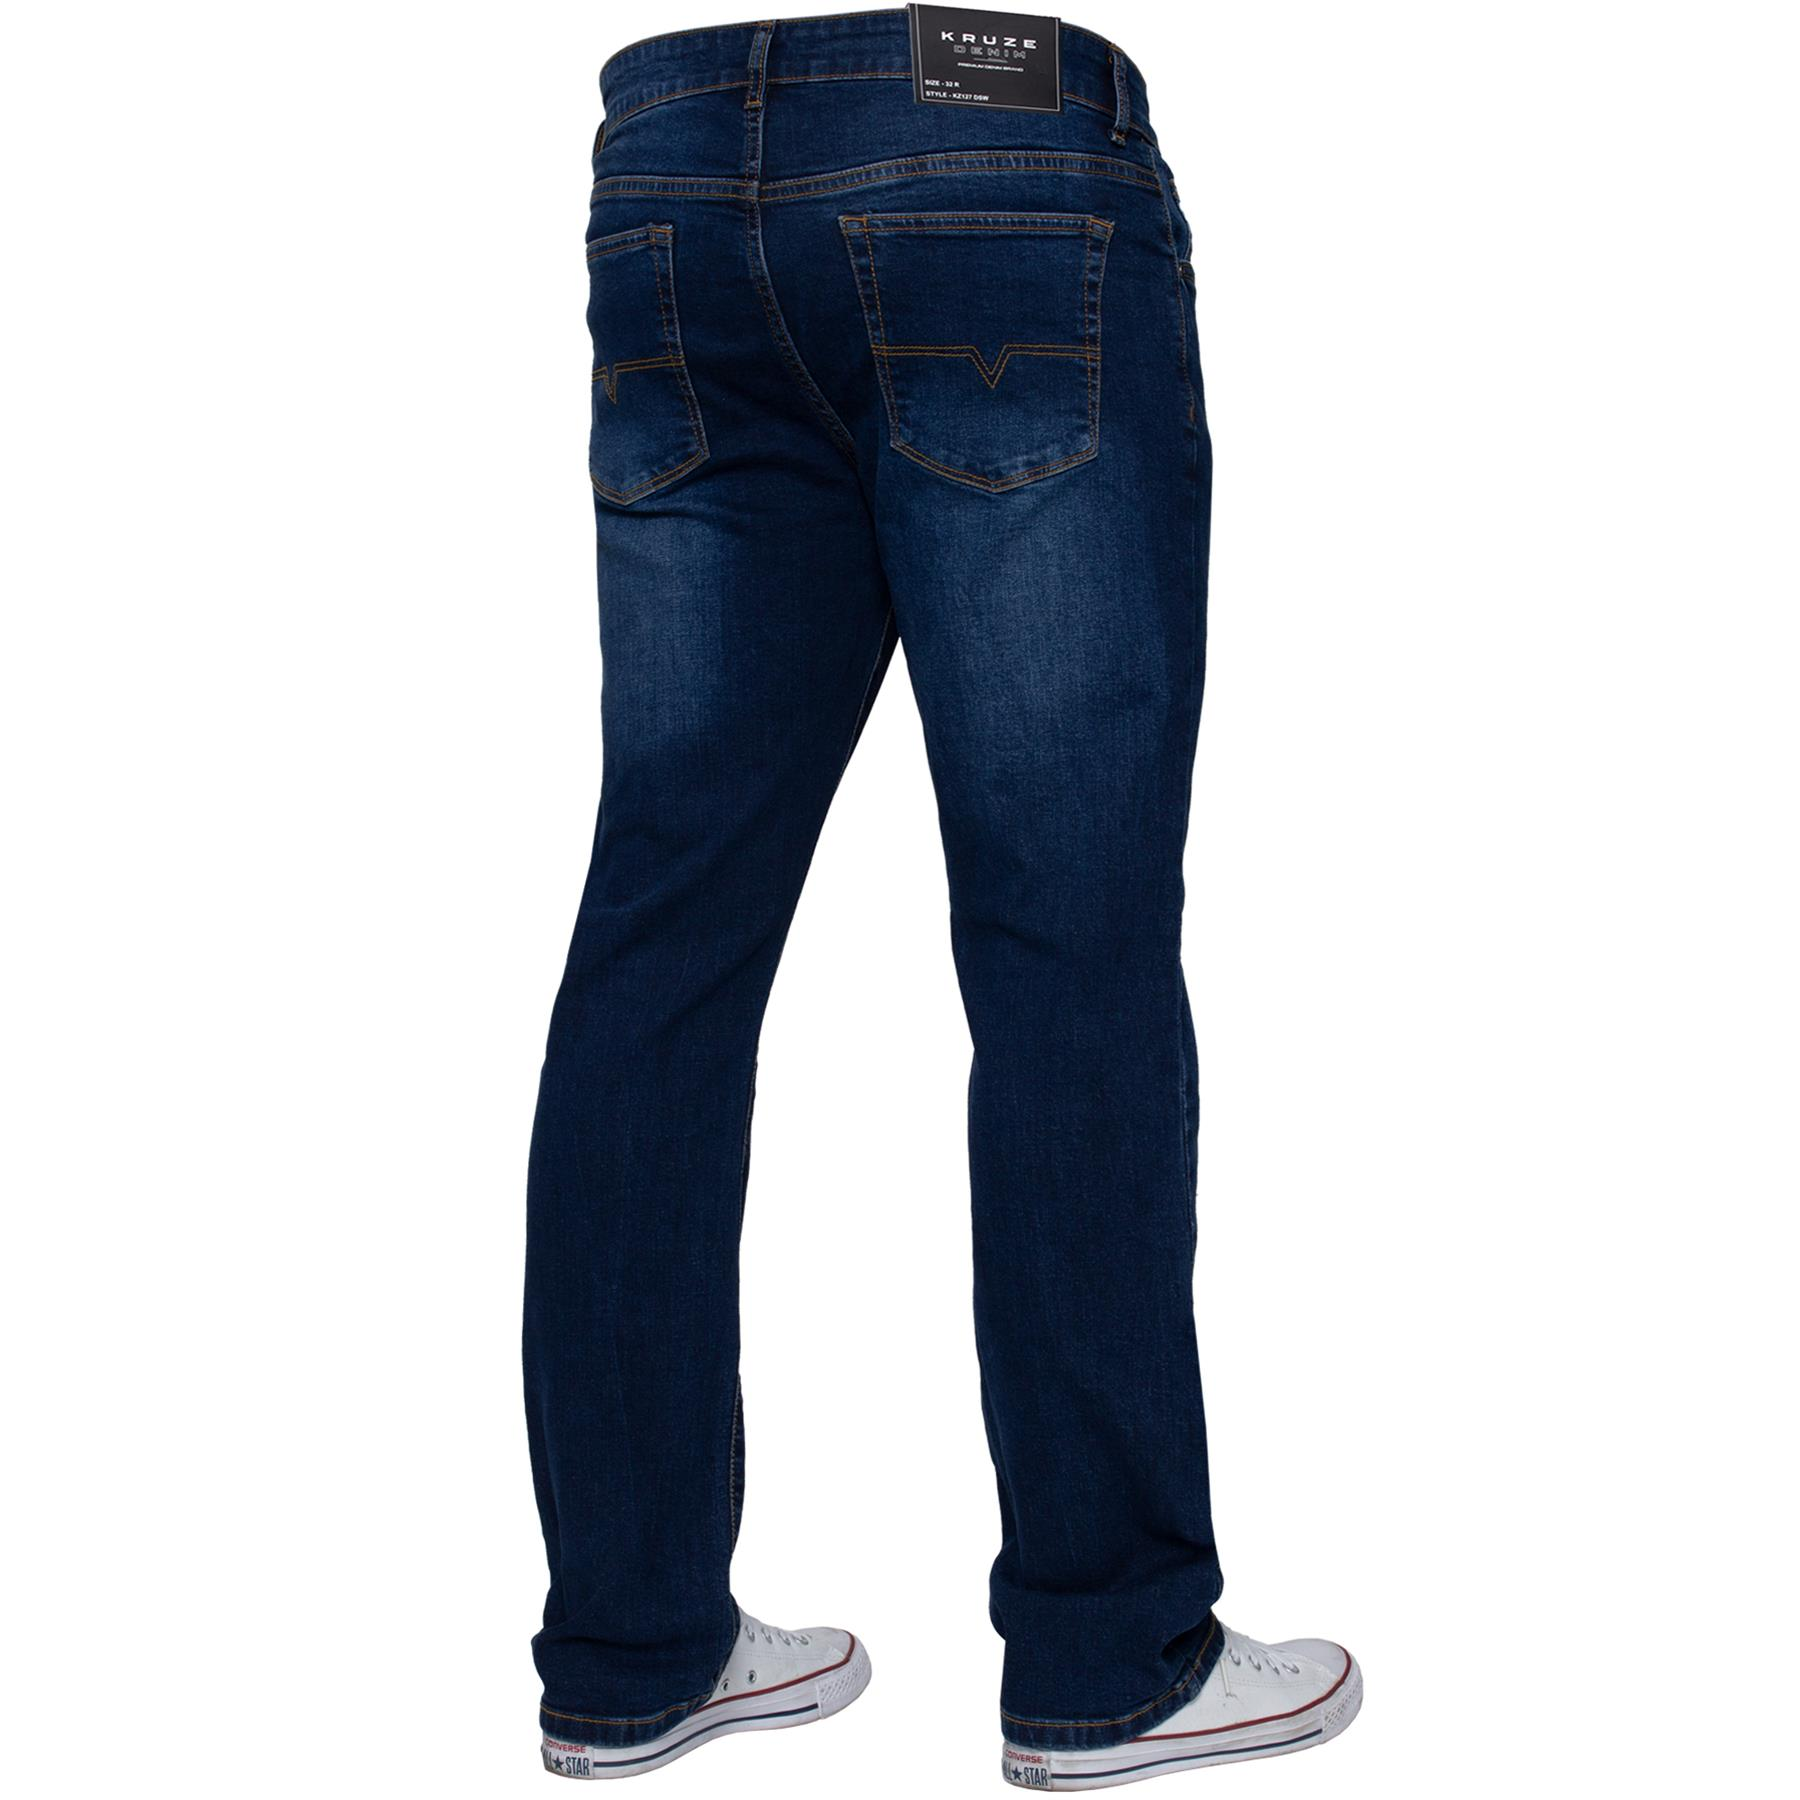 Kruze-Mens-Basic-Straight-Leg-Bootcut-Stretch-Jeans-Denim-Regular-Big-Tall-Waist thumbnail 26